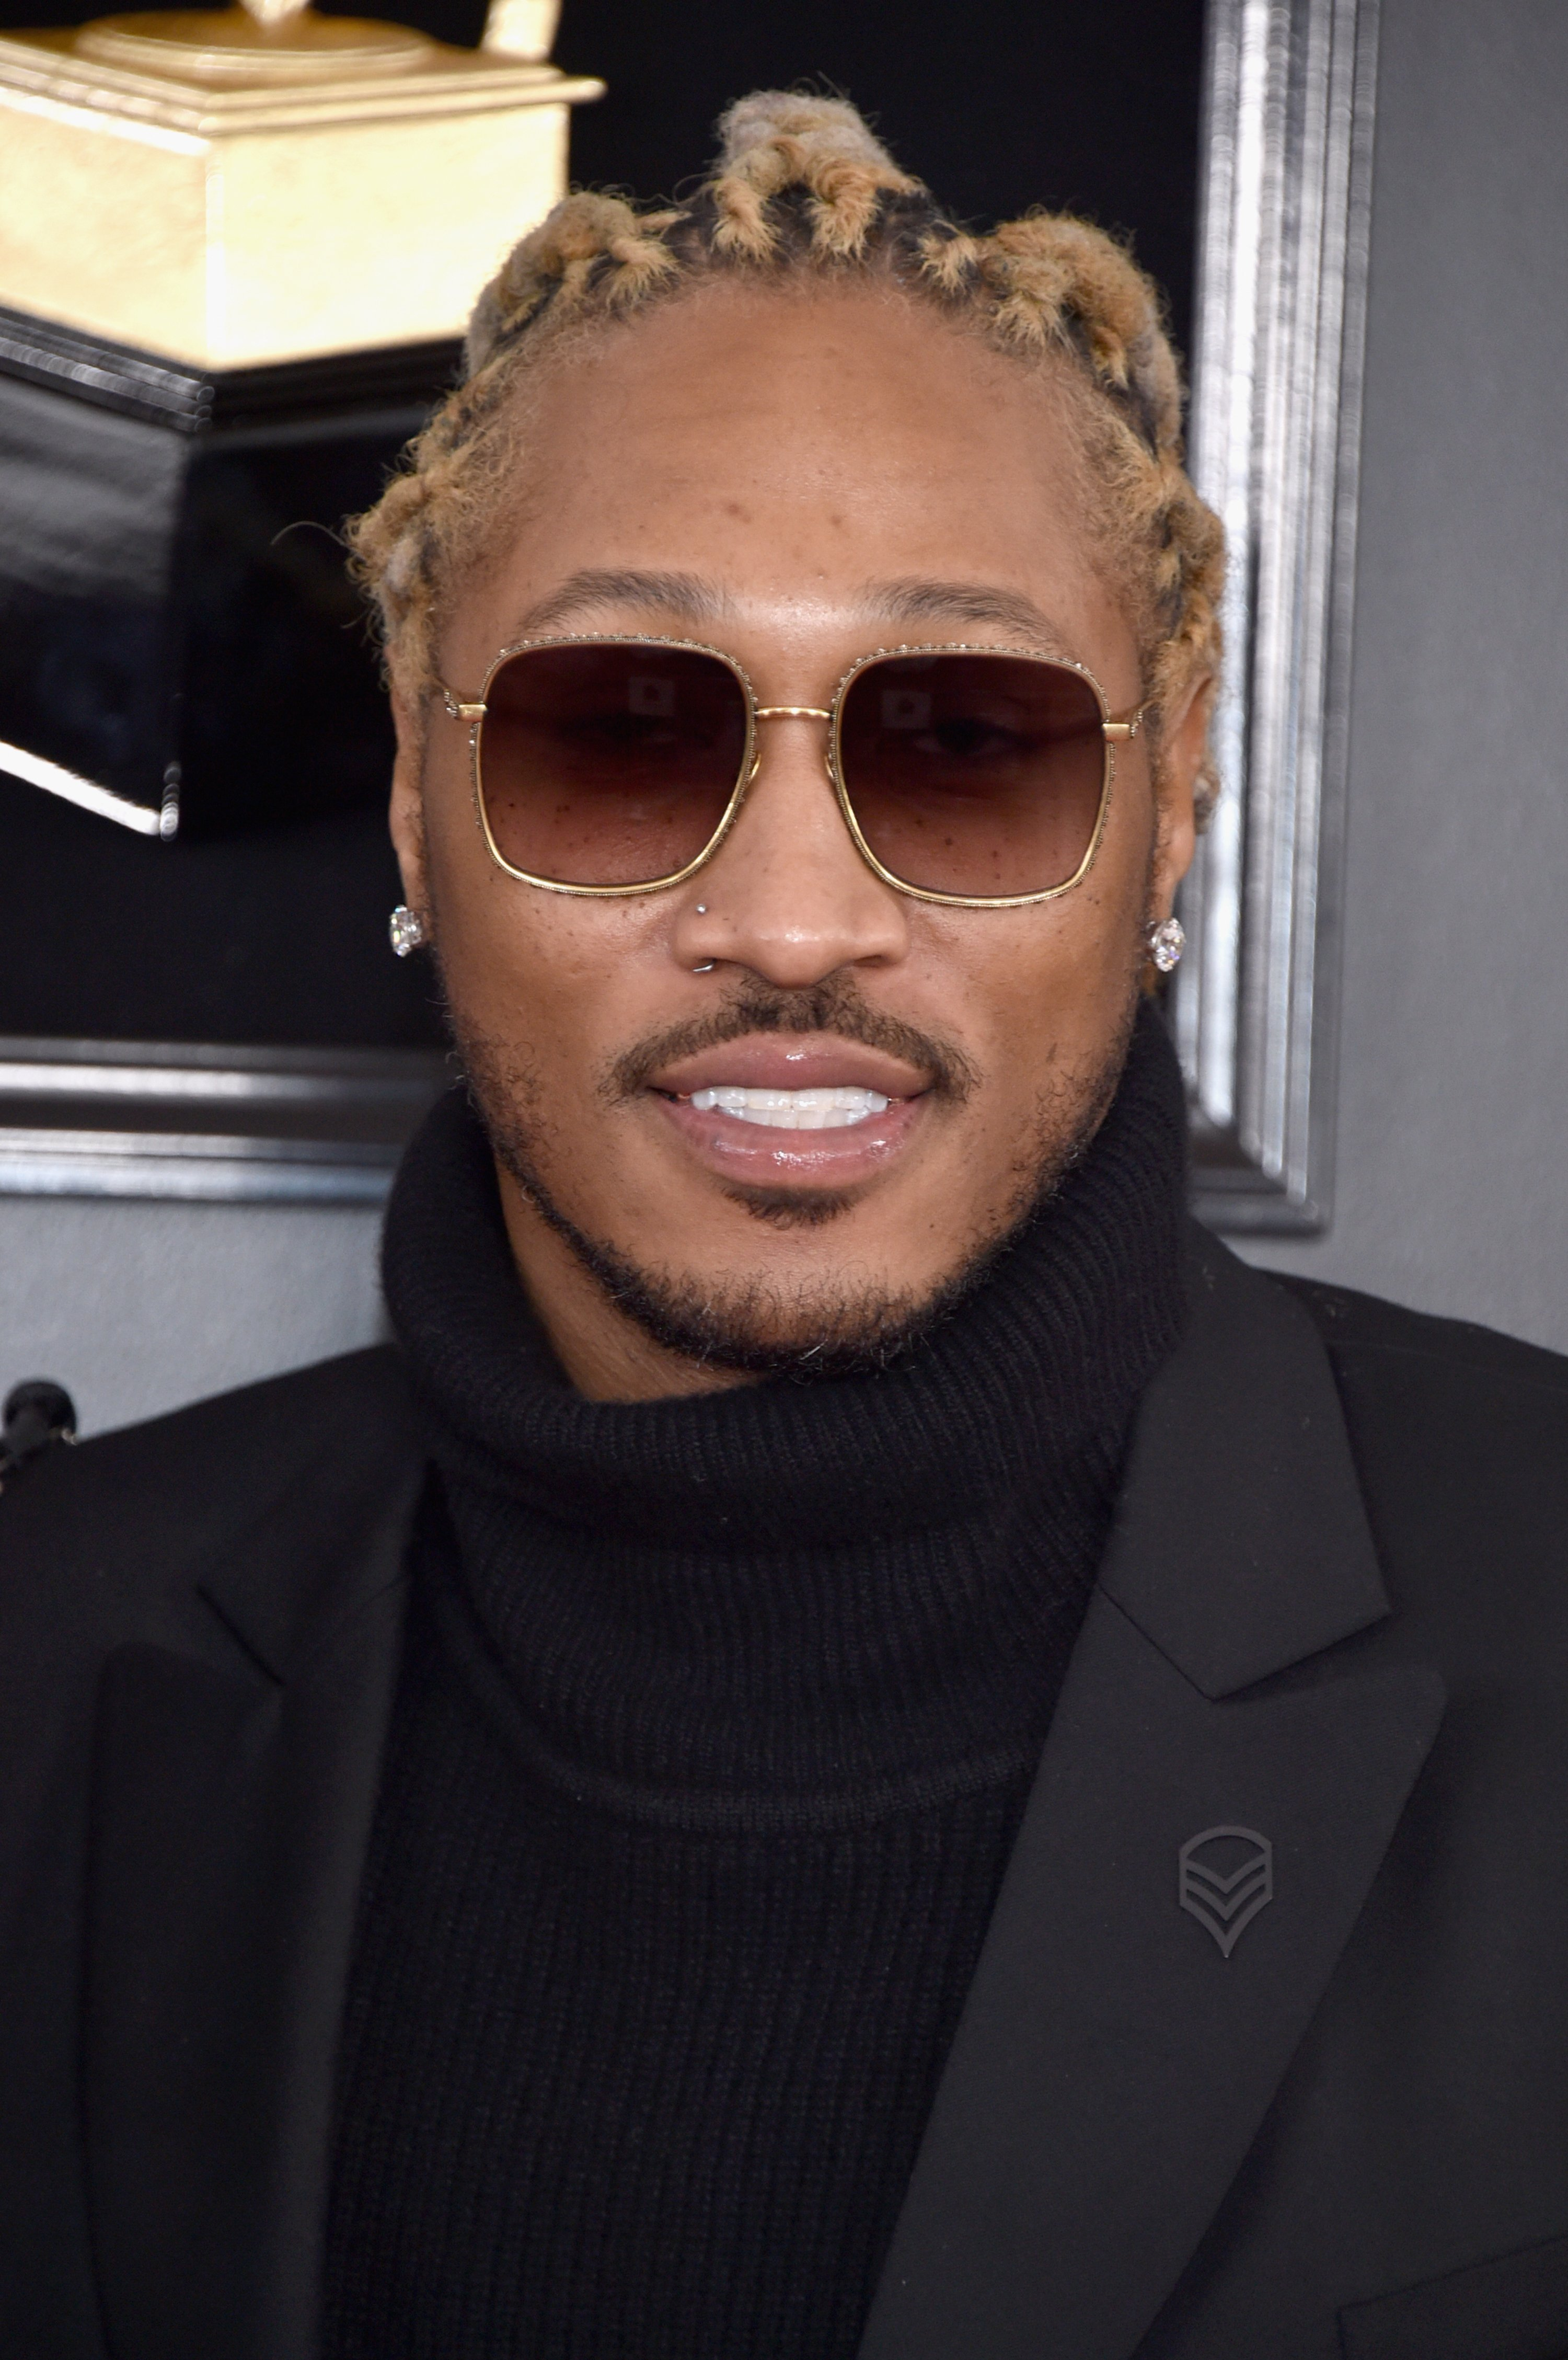 Future at the 61st Annual Grammy Awards in February 2019. | Photo: Getty Images